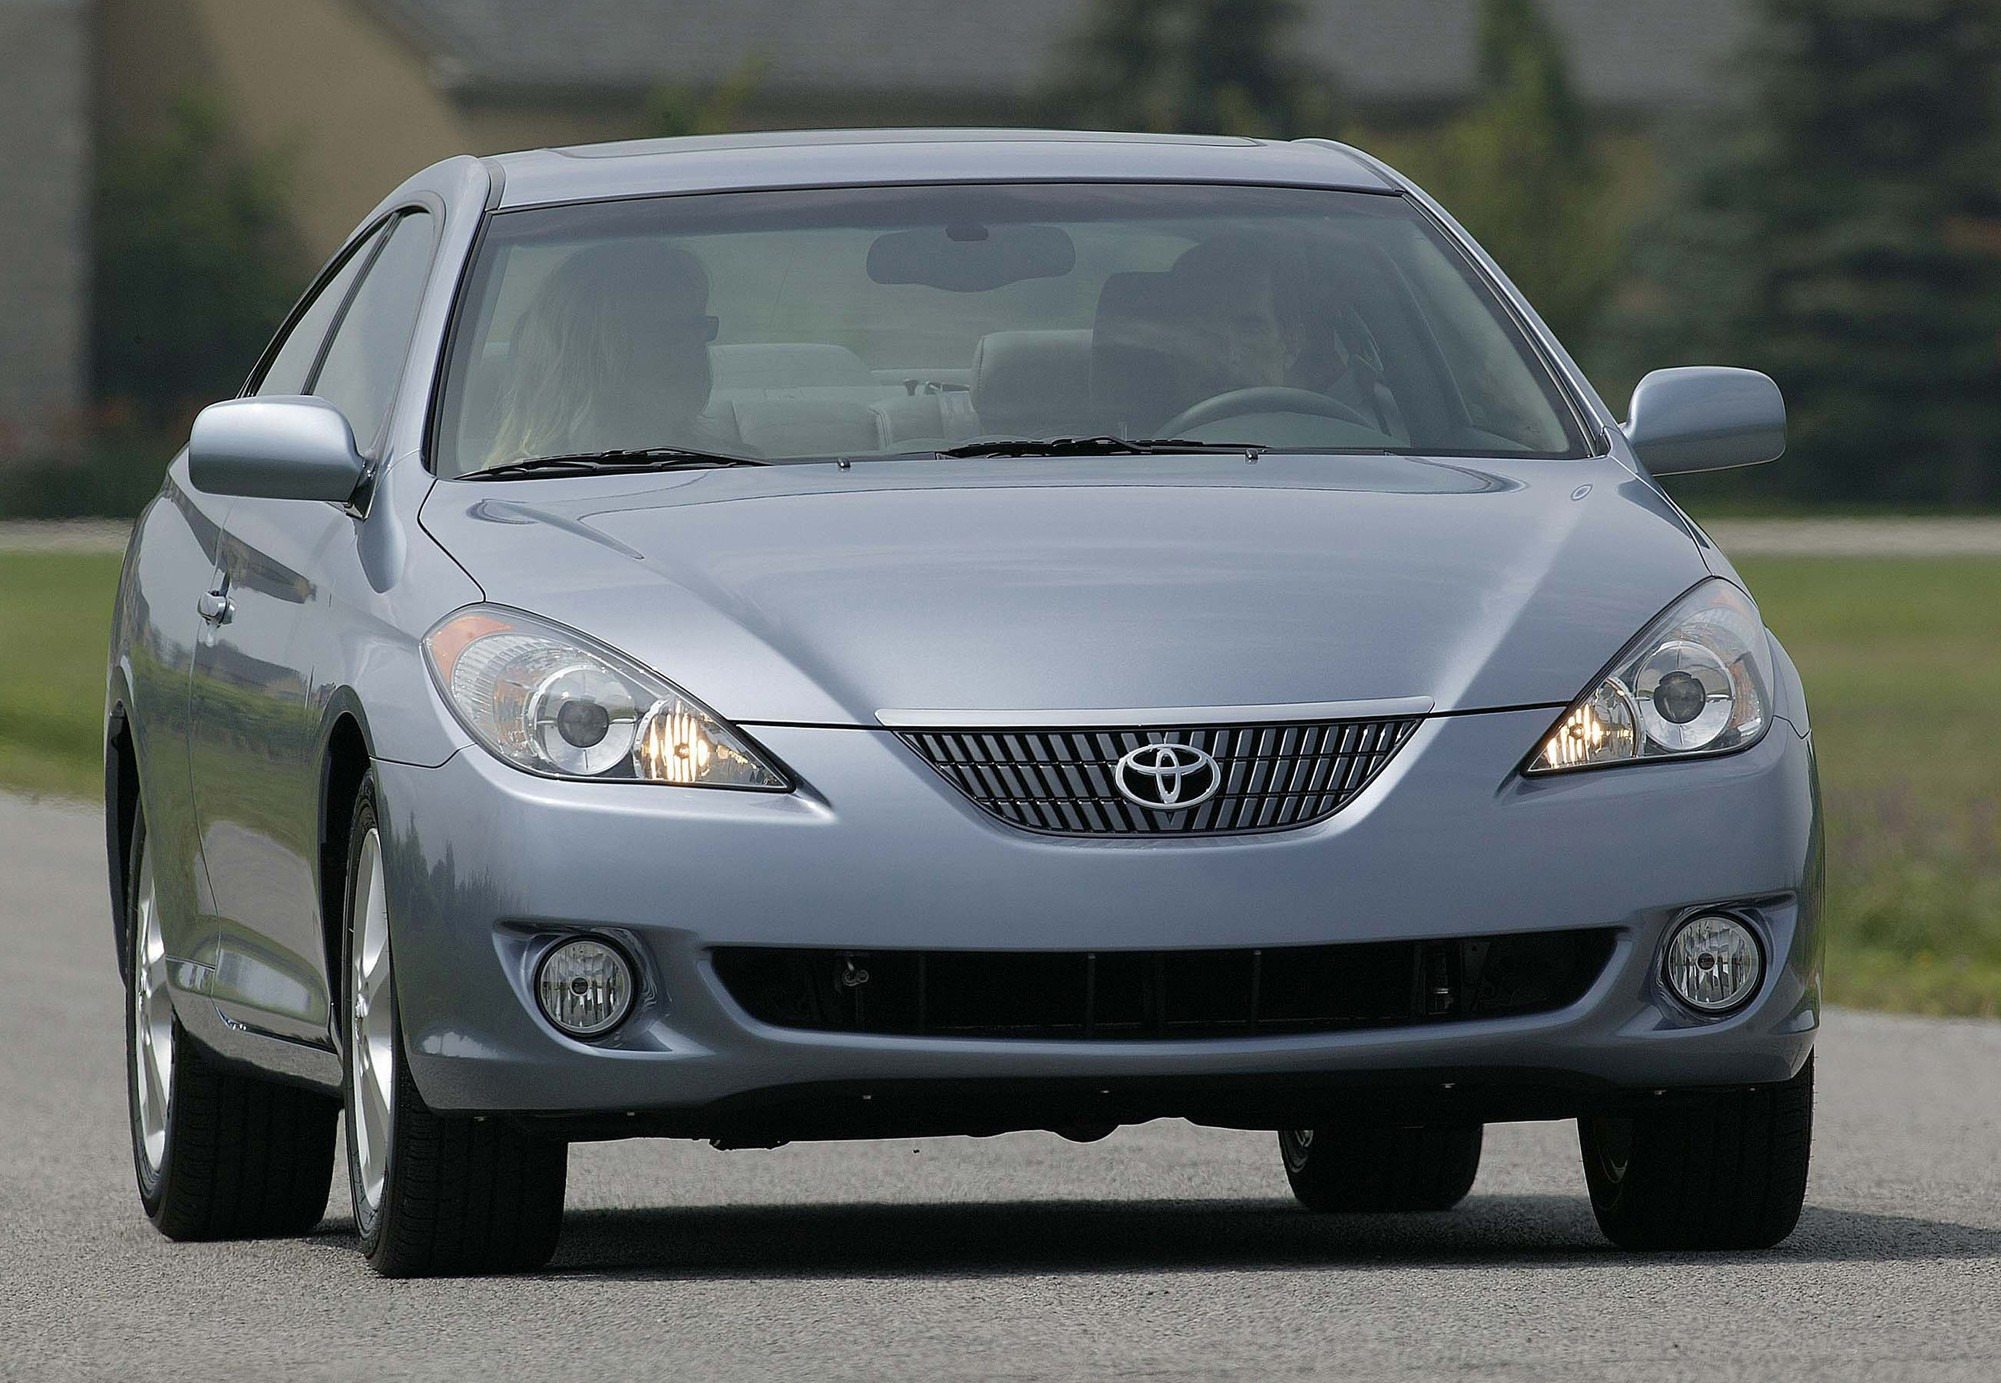 ... Toyota Camry Coupe 2 Doors 2003 Model Exterior  ...